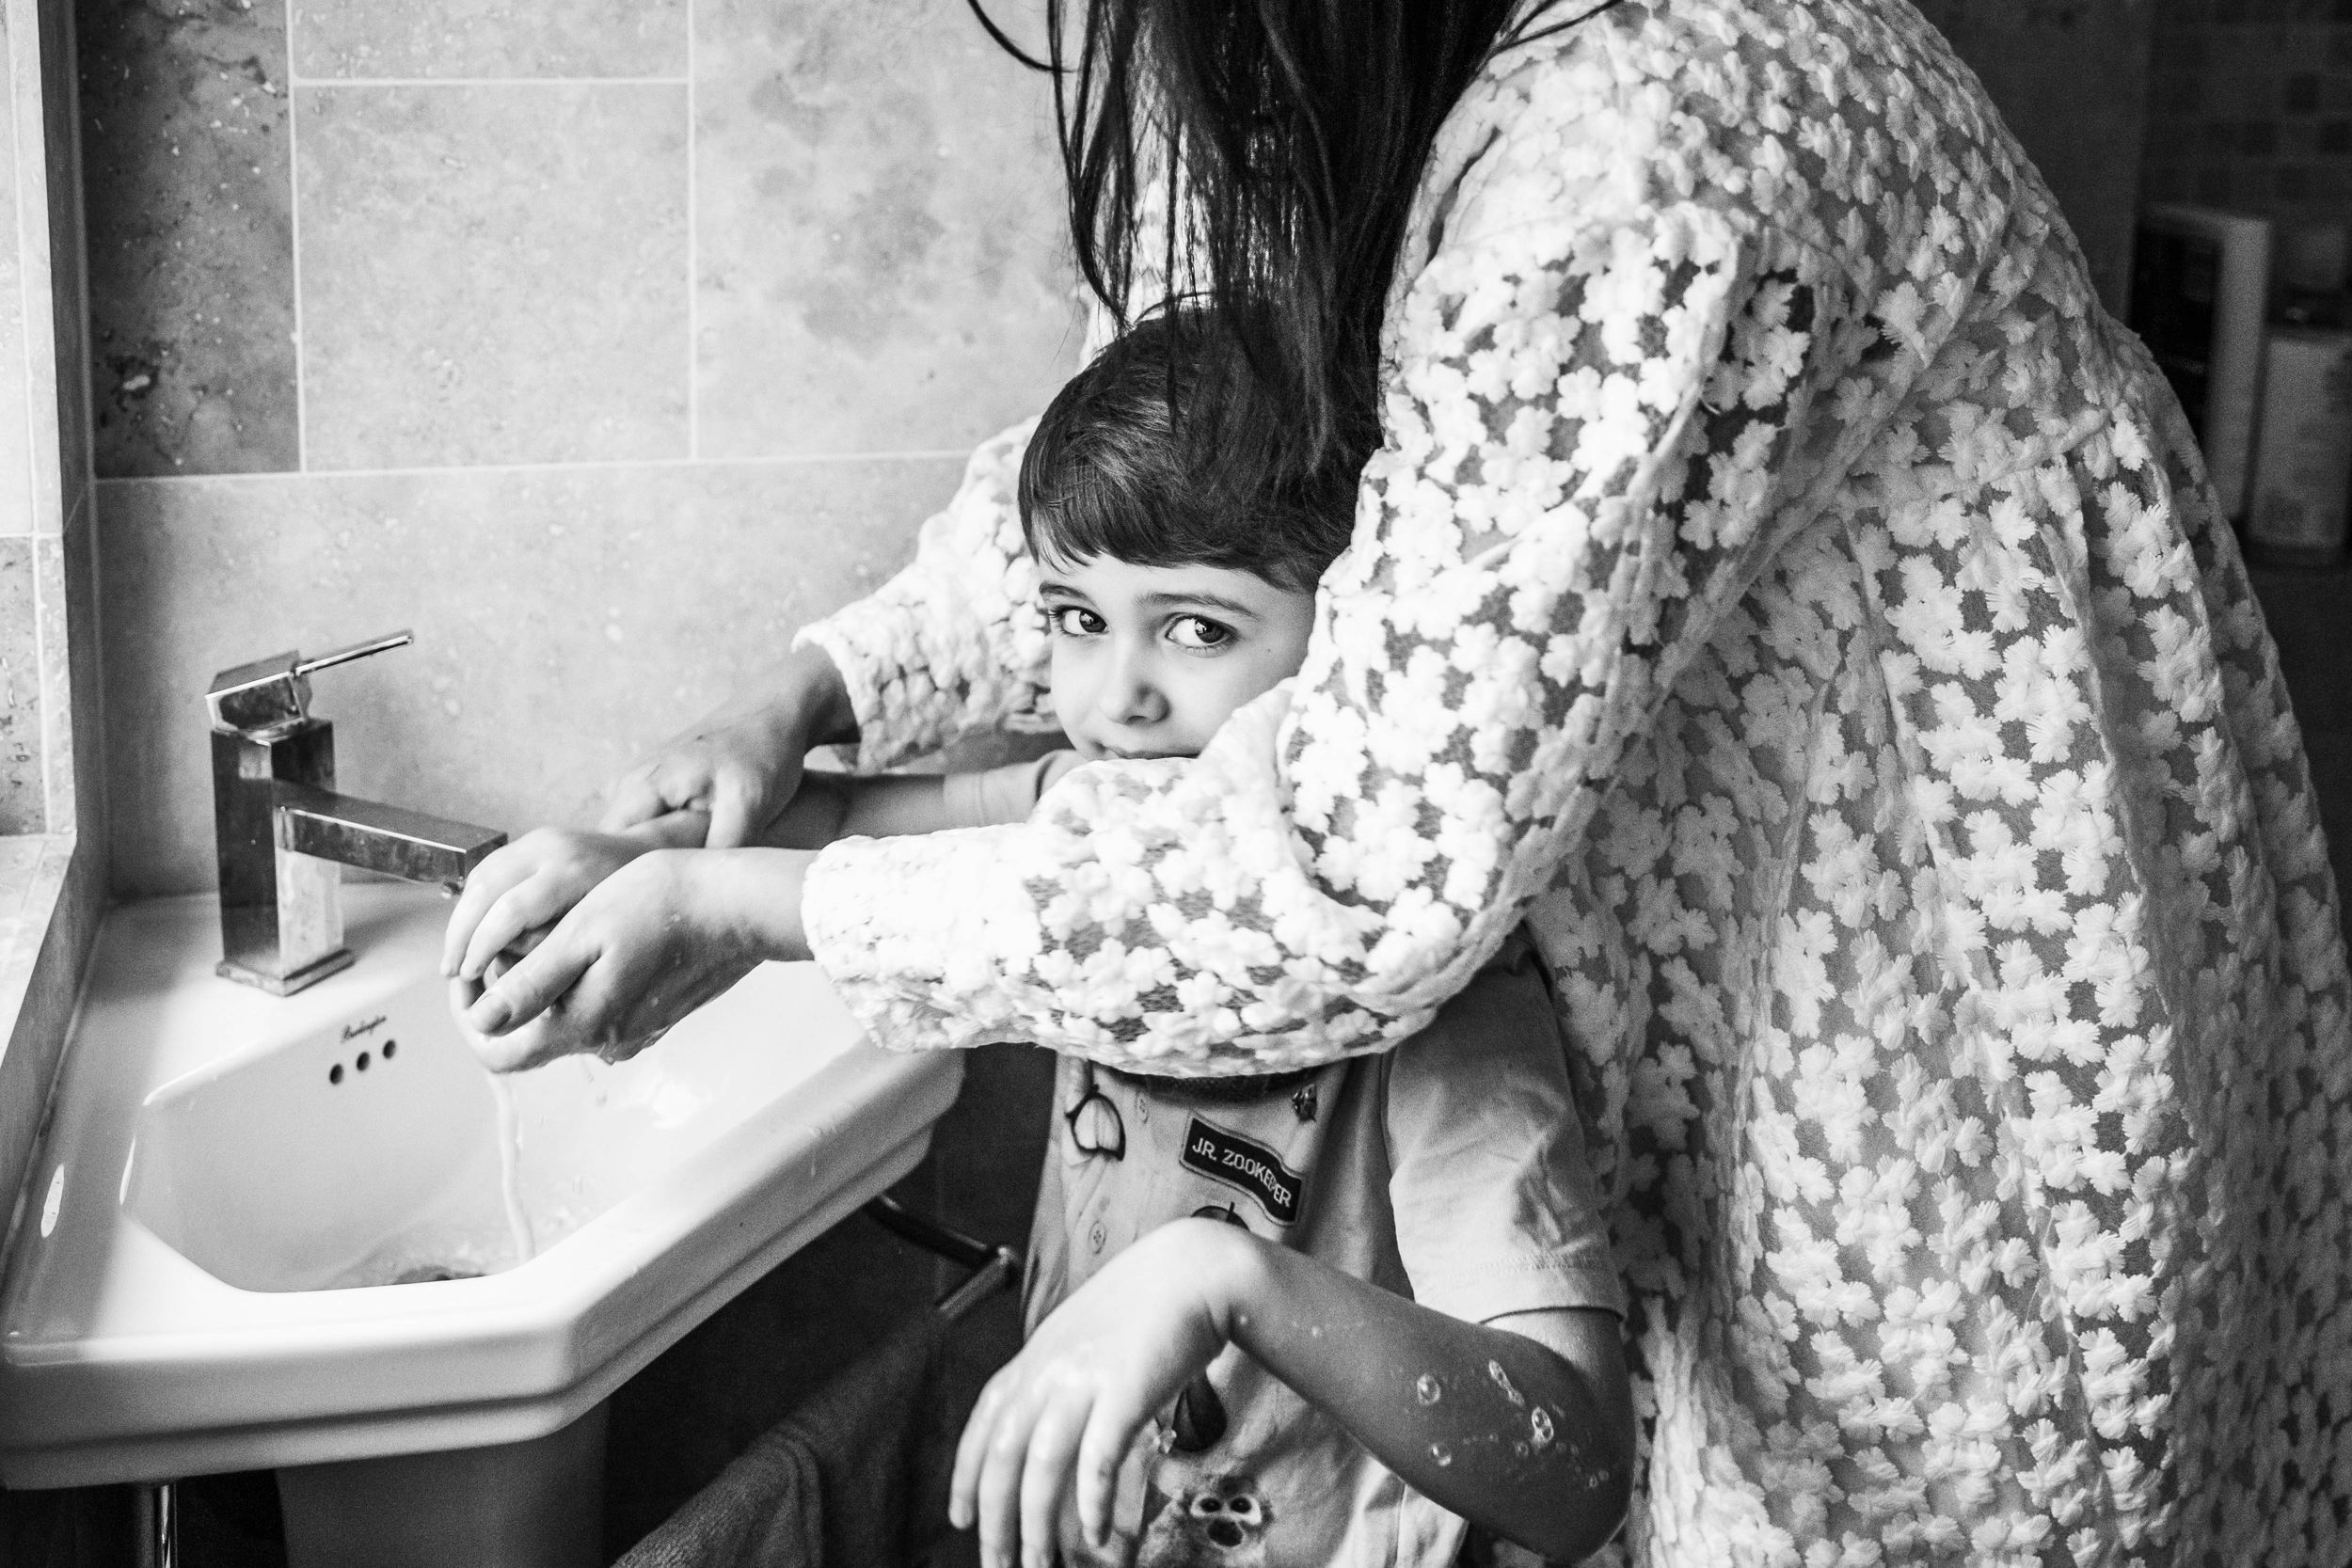 mum cleaning boy hands in bathroom black and white